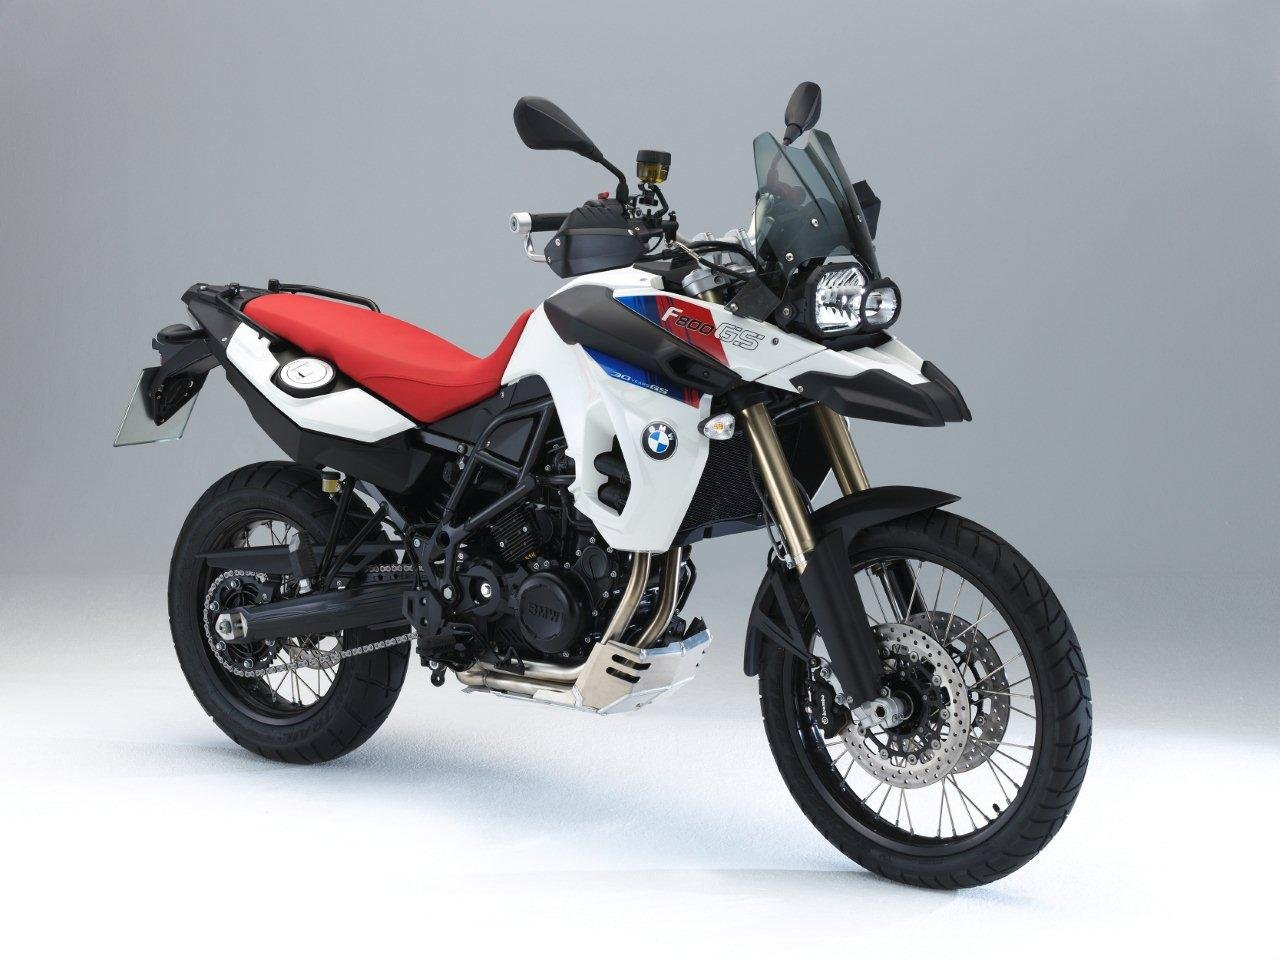 Bmw F800 Gs Italy Motorcycle Rental Scooters